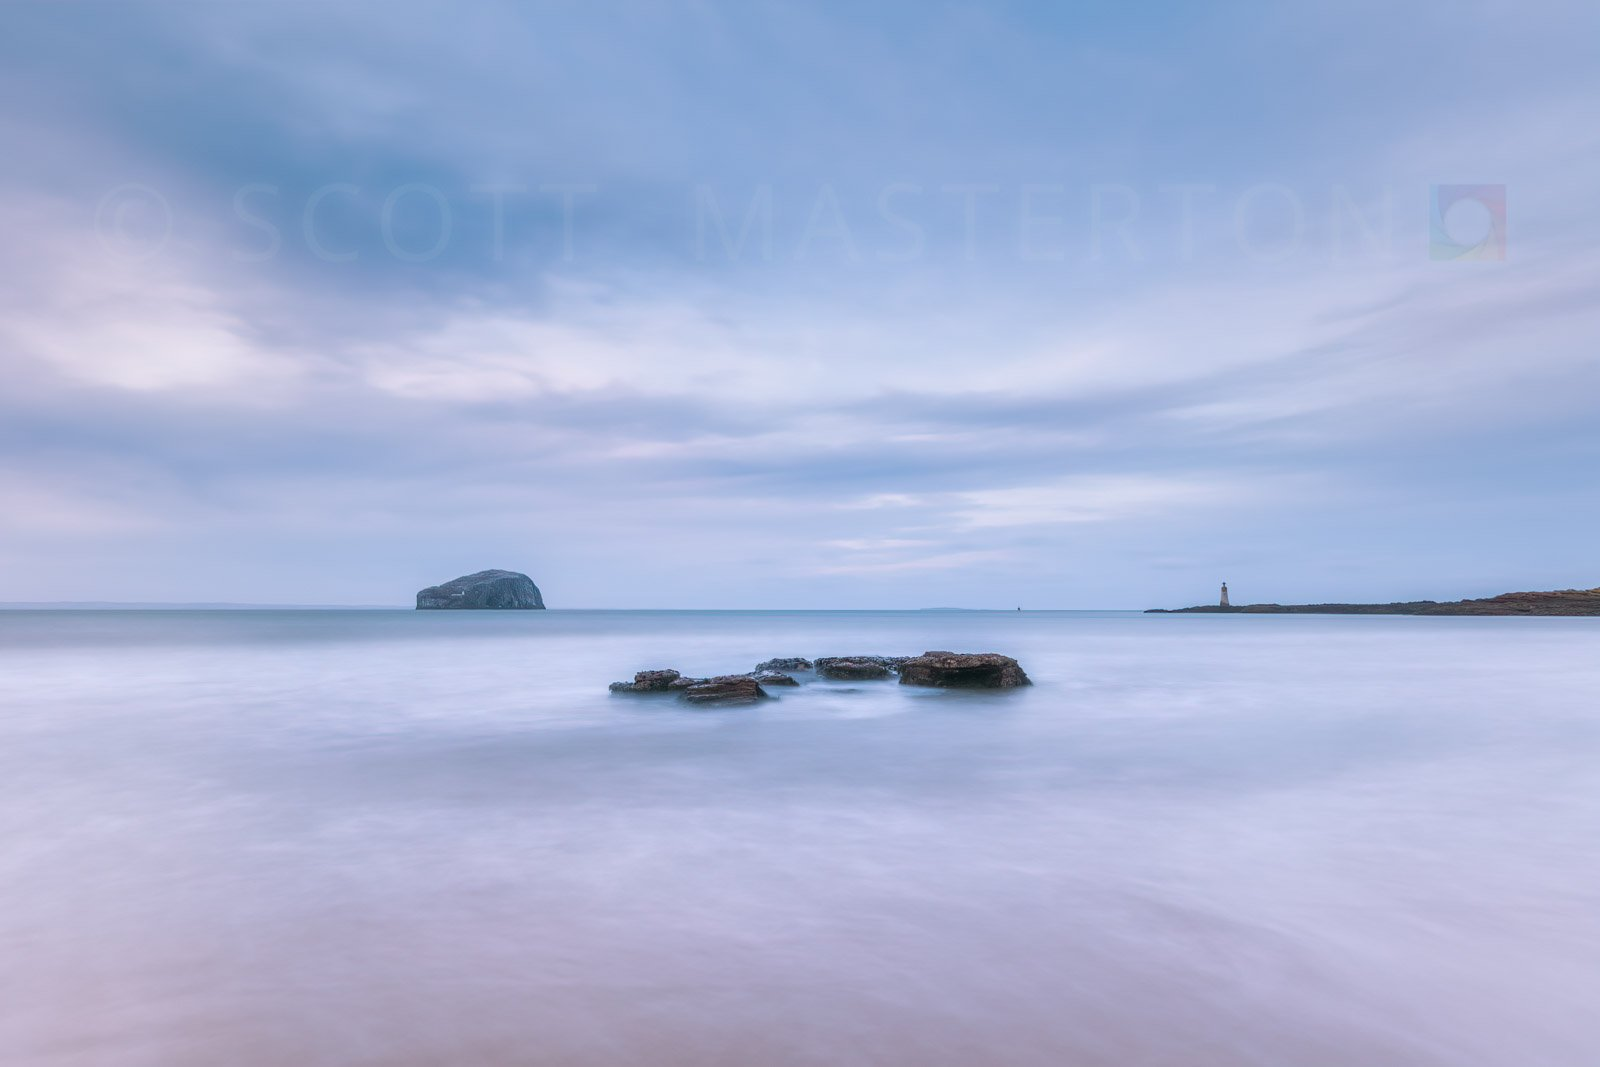 Scotland, East Lothian, North Berwick, Tantallon, Seacliff Beach.